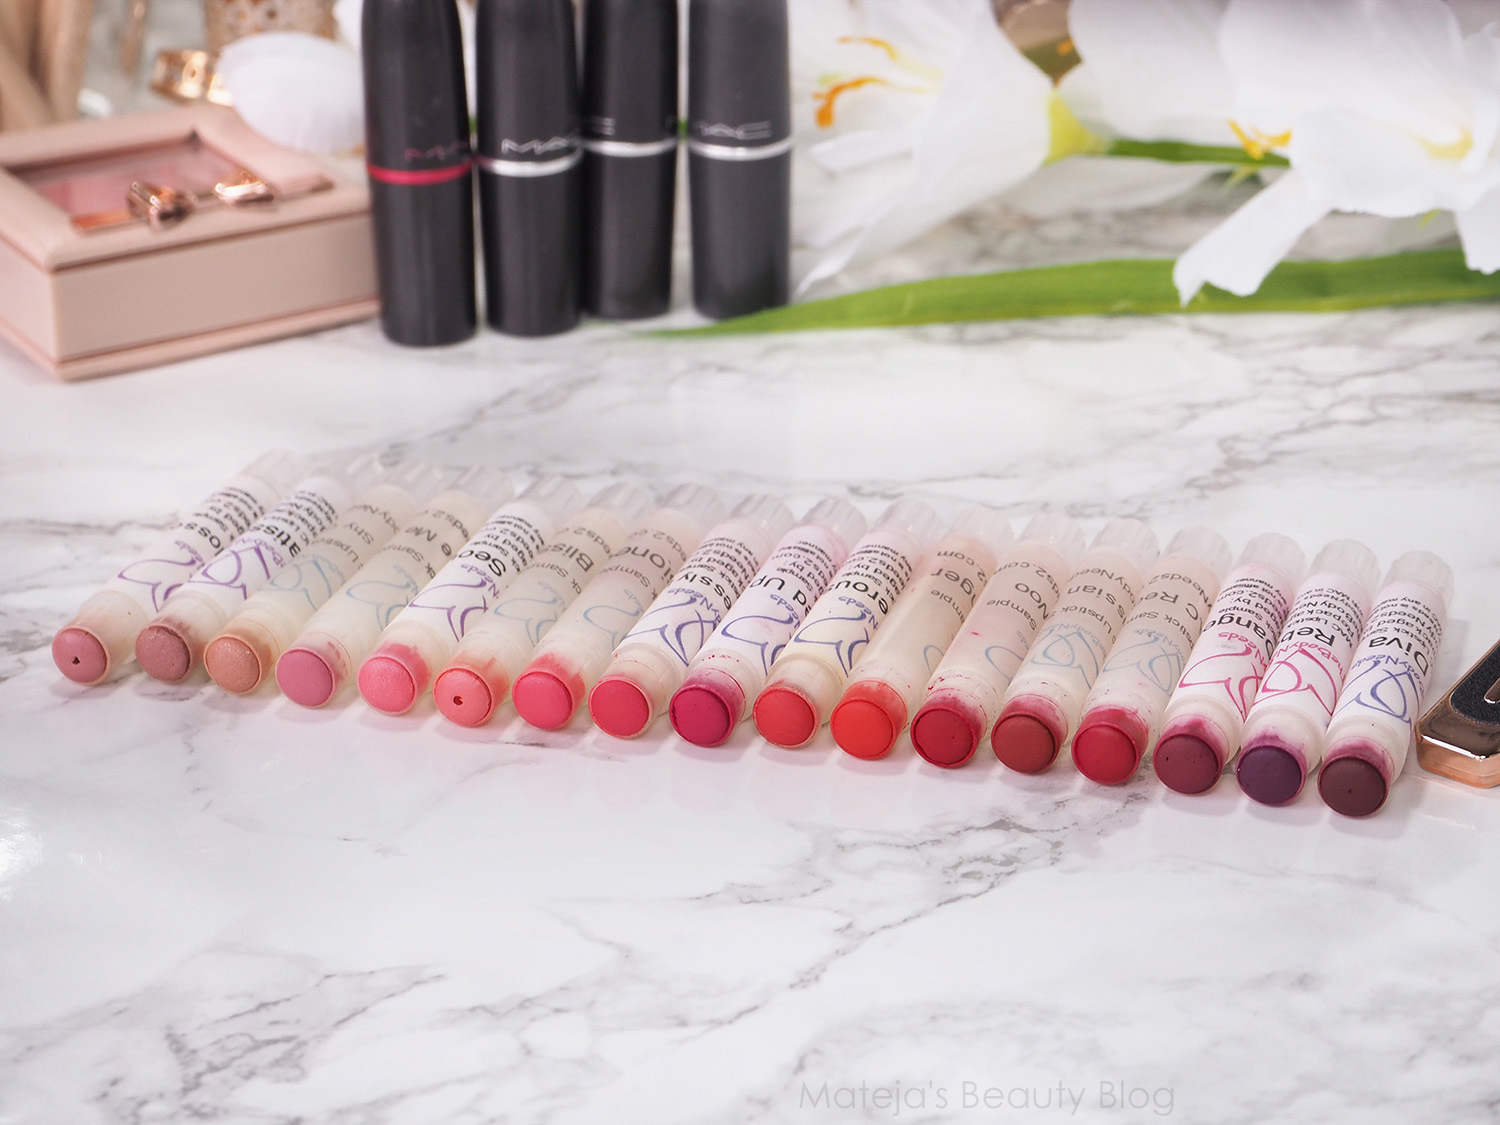 20 Mac lipsticks swatched plus their dupes